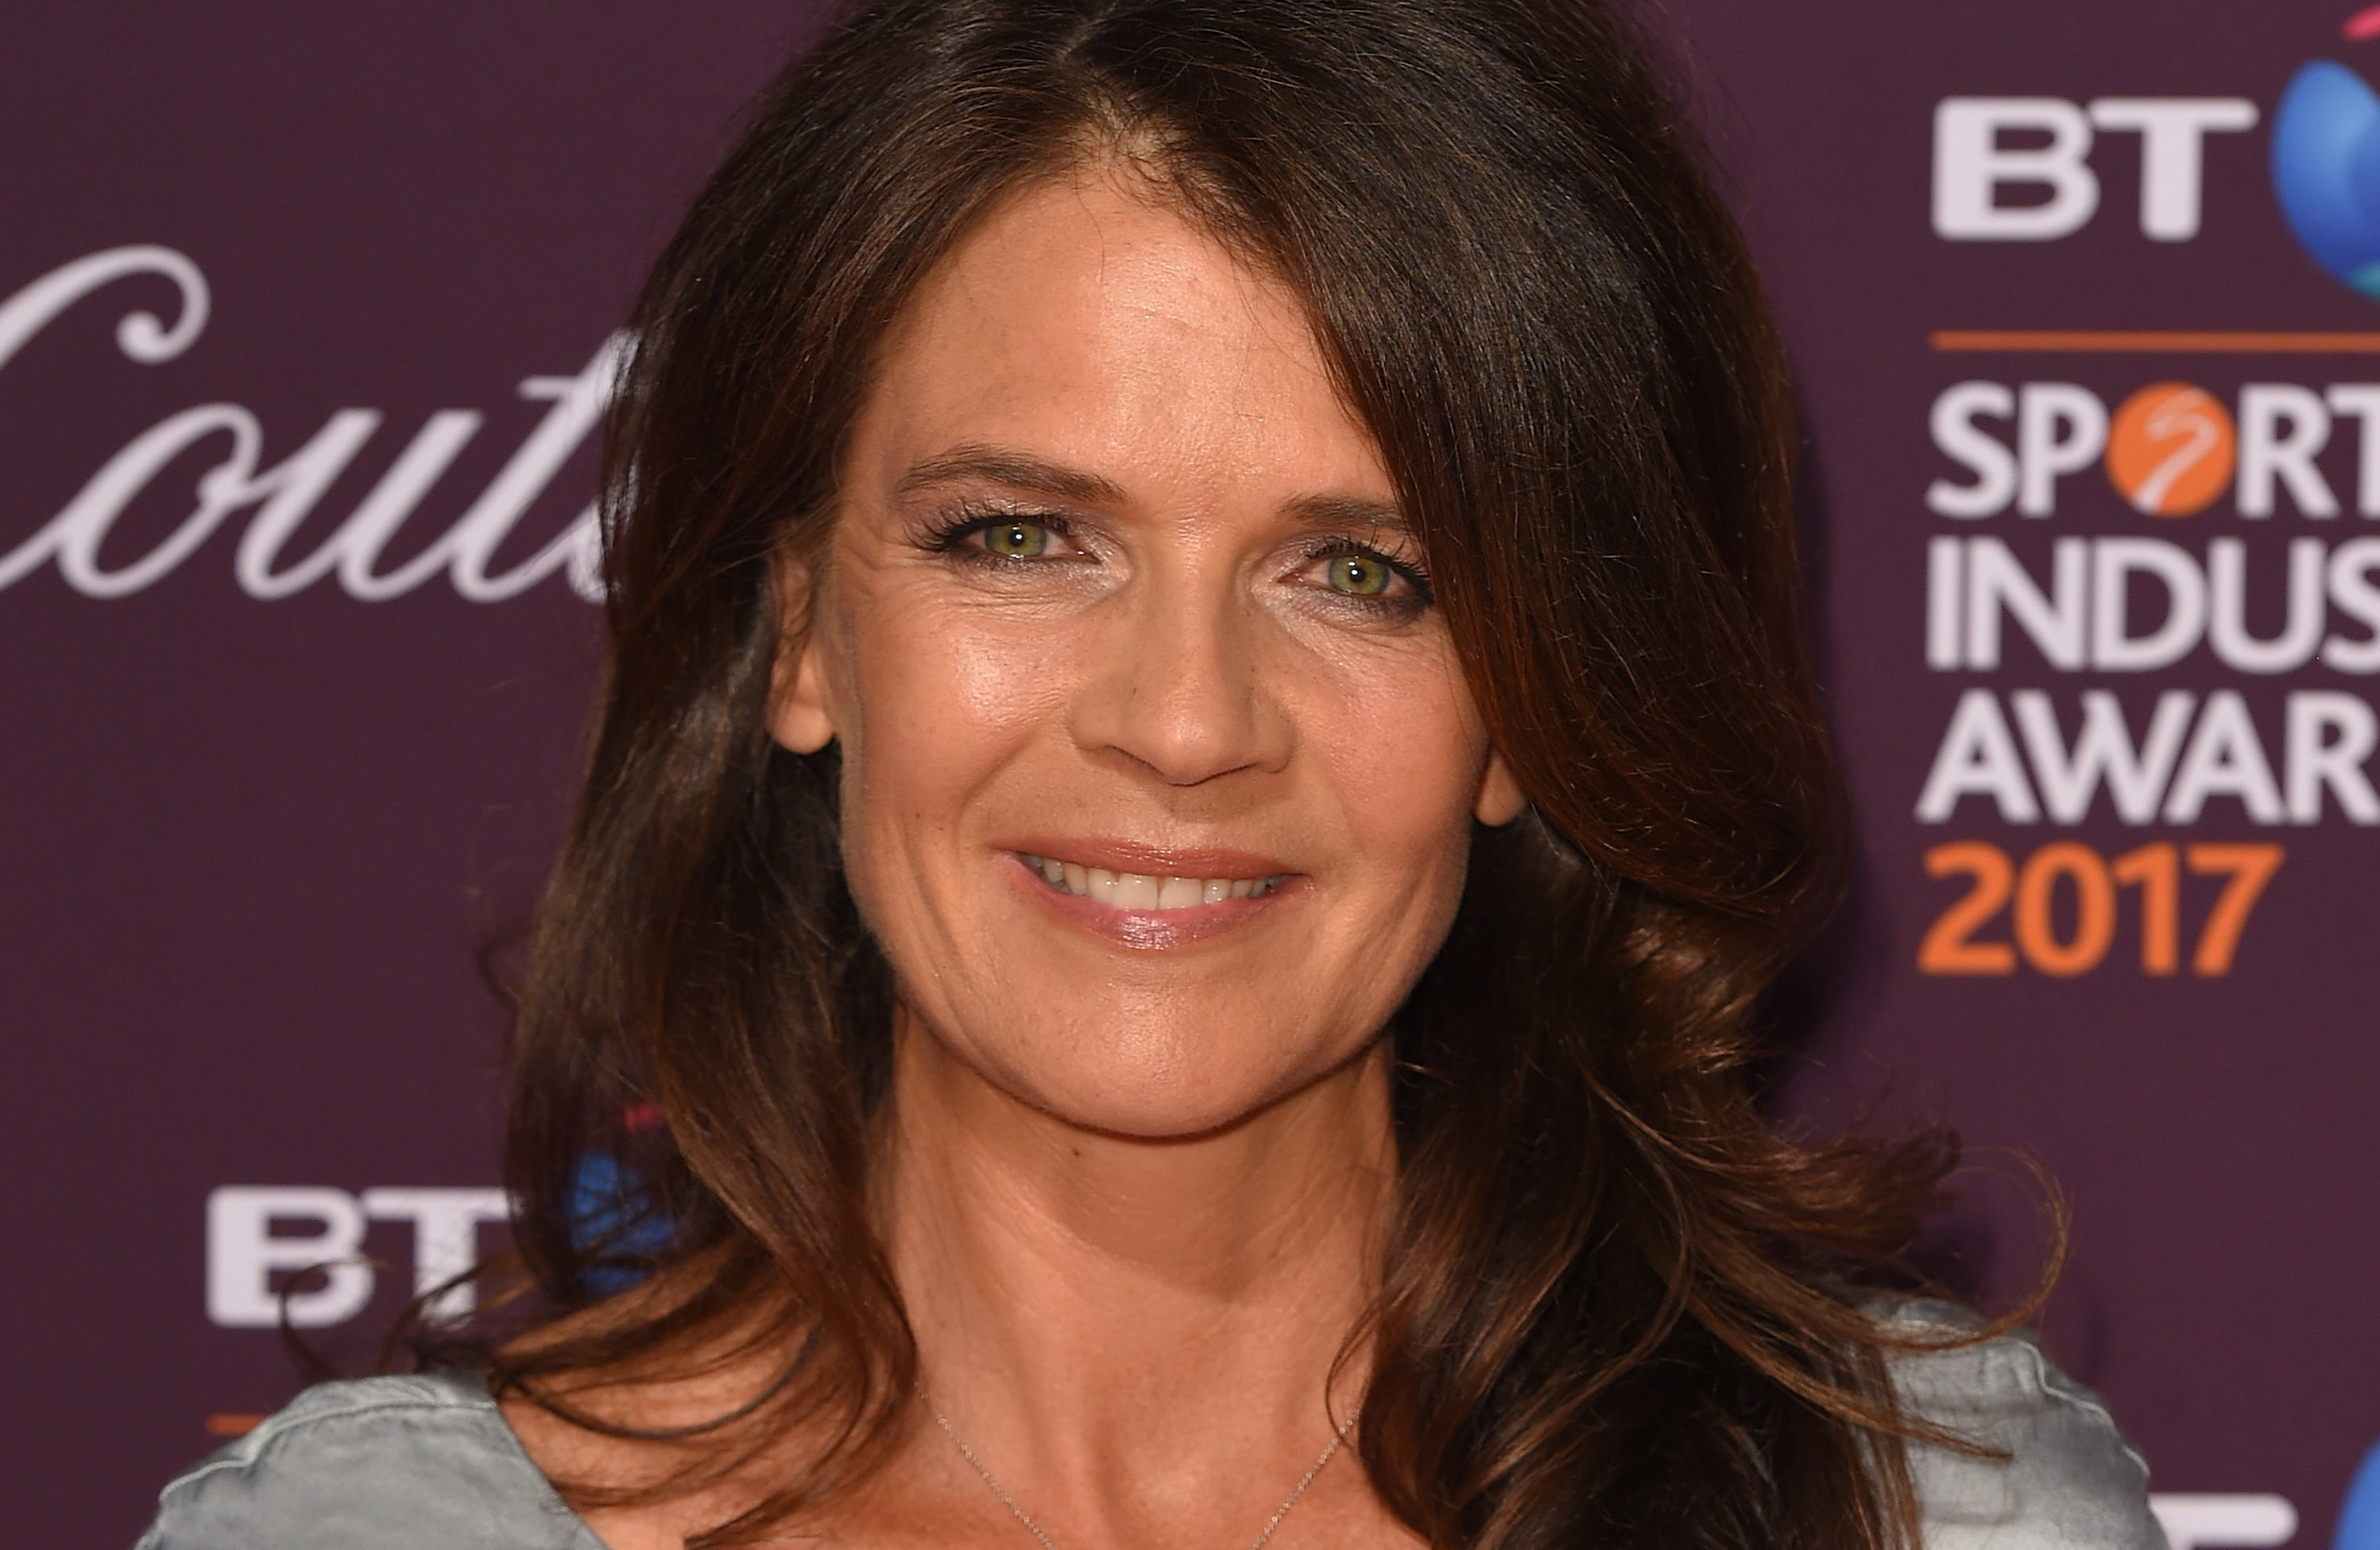 Annabel Croft (Anthony Harvey/Getty Images for Sport Industry Awards)